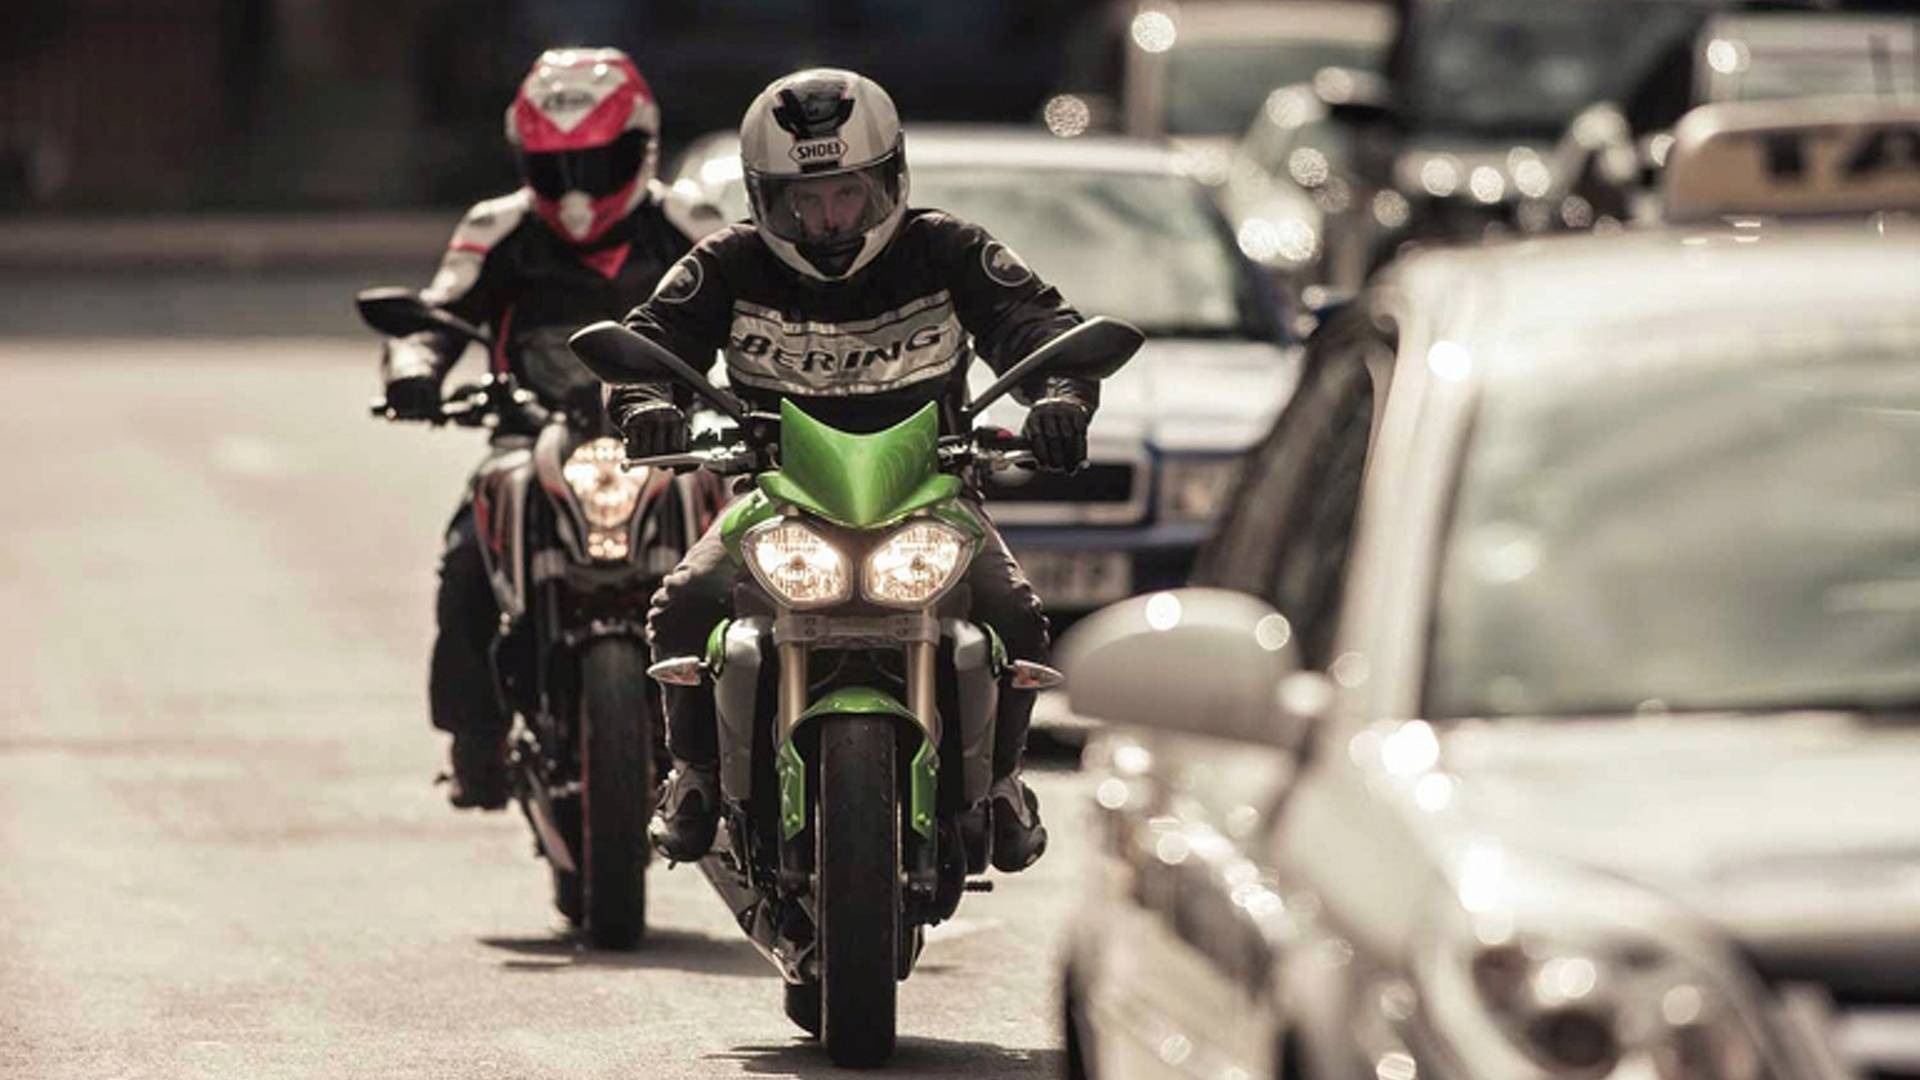 ask-rideapart-how-hard-is-it-to-ride-a-motorcycle